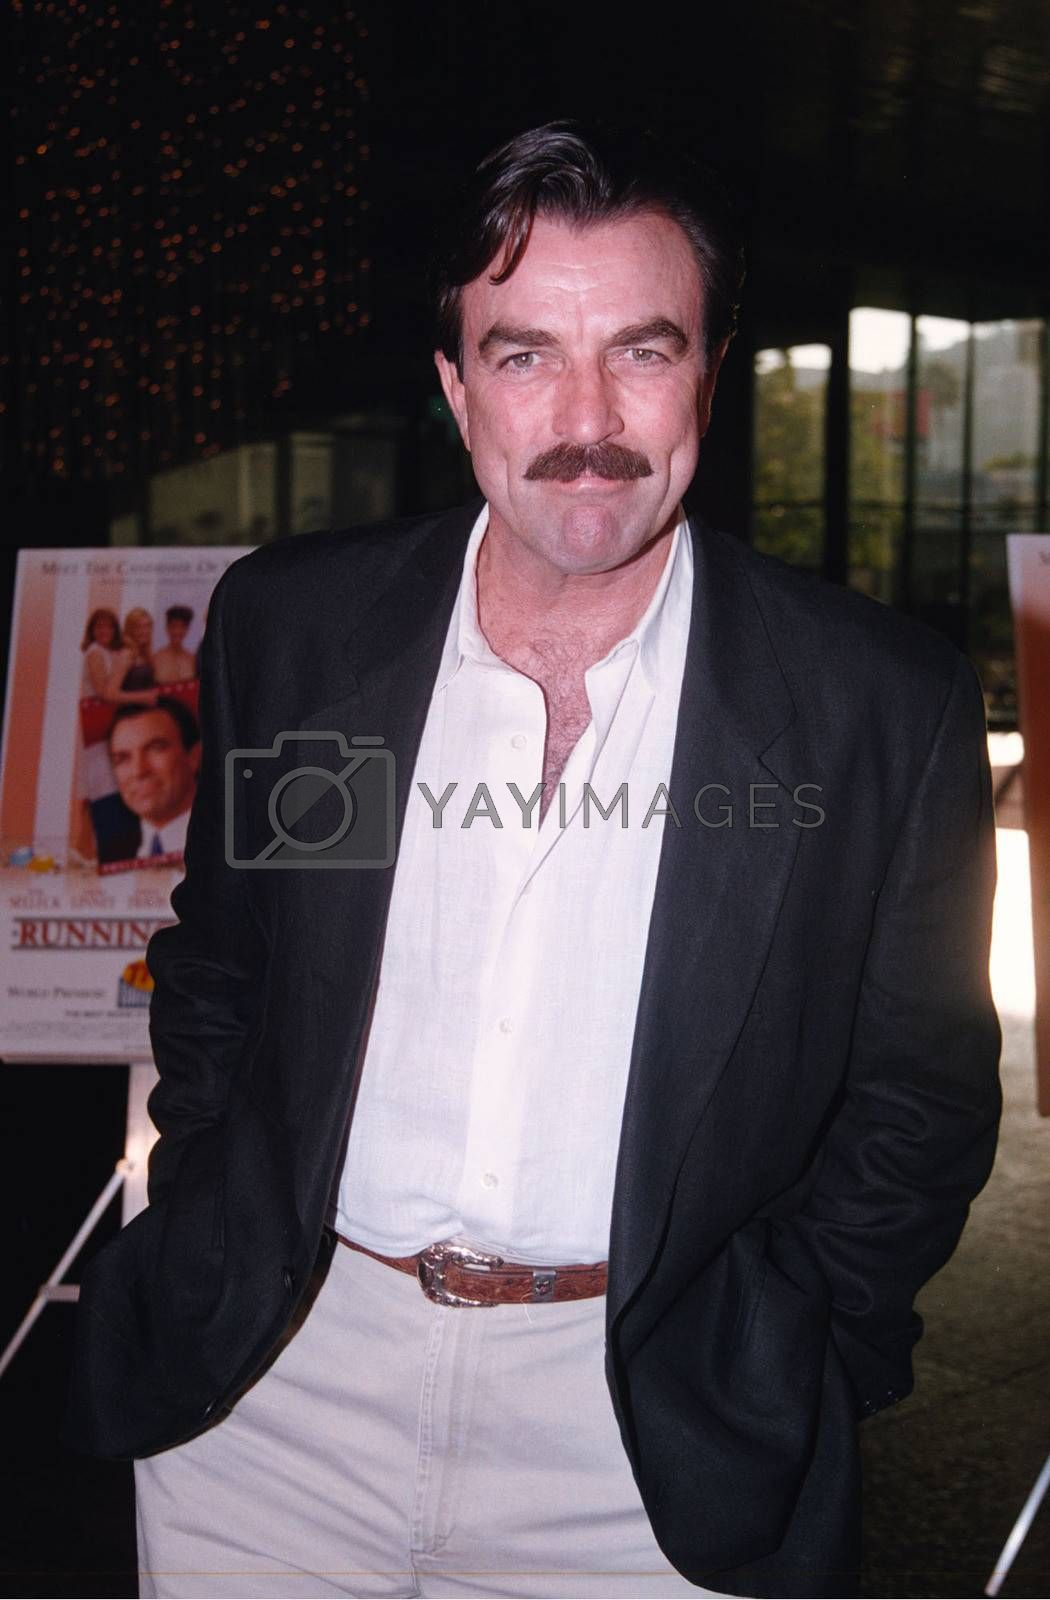 Tom Selleck at the premiere of the TNT movie Running Mates. 08-01-00